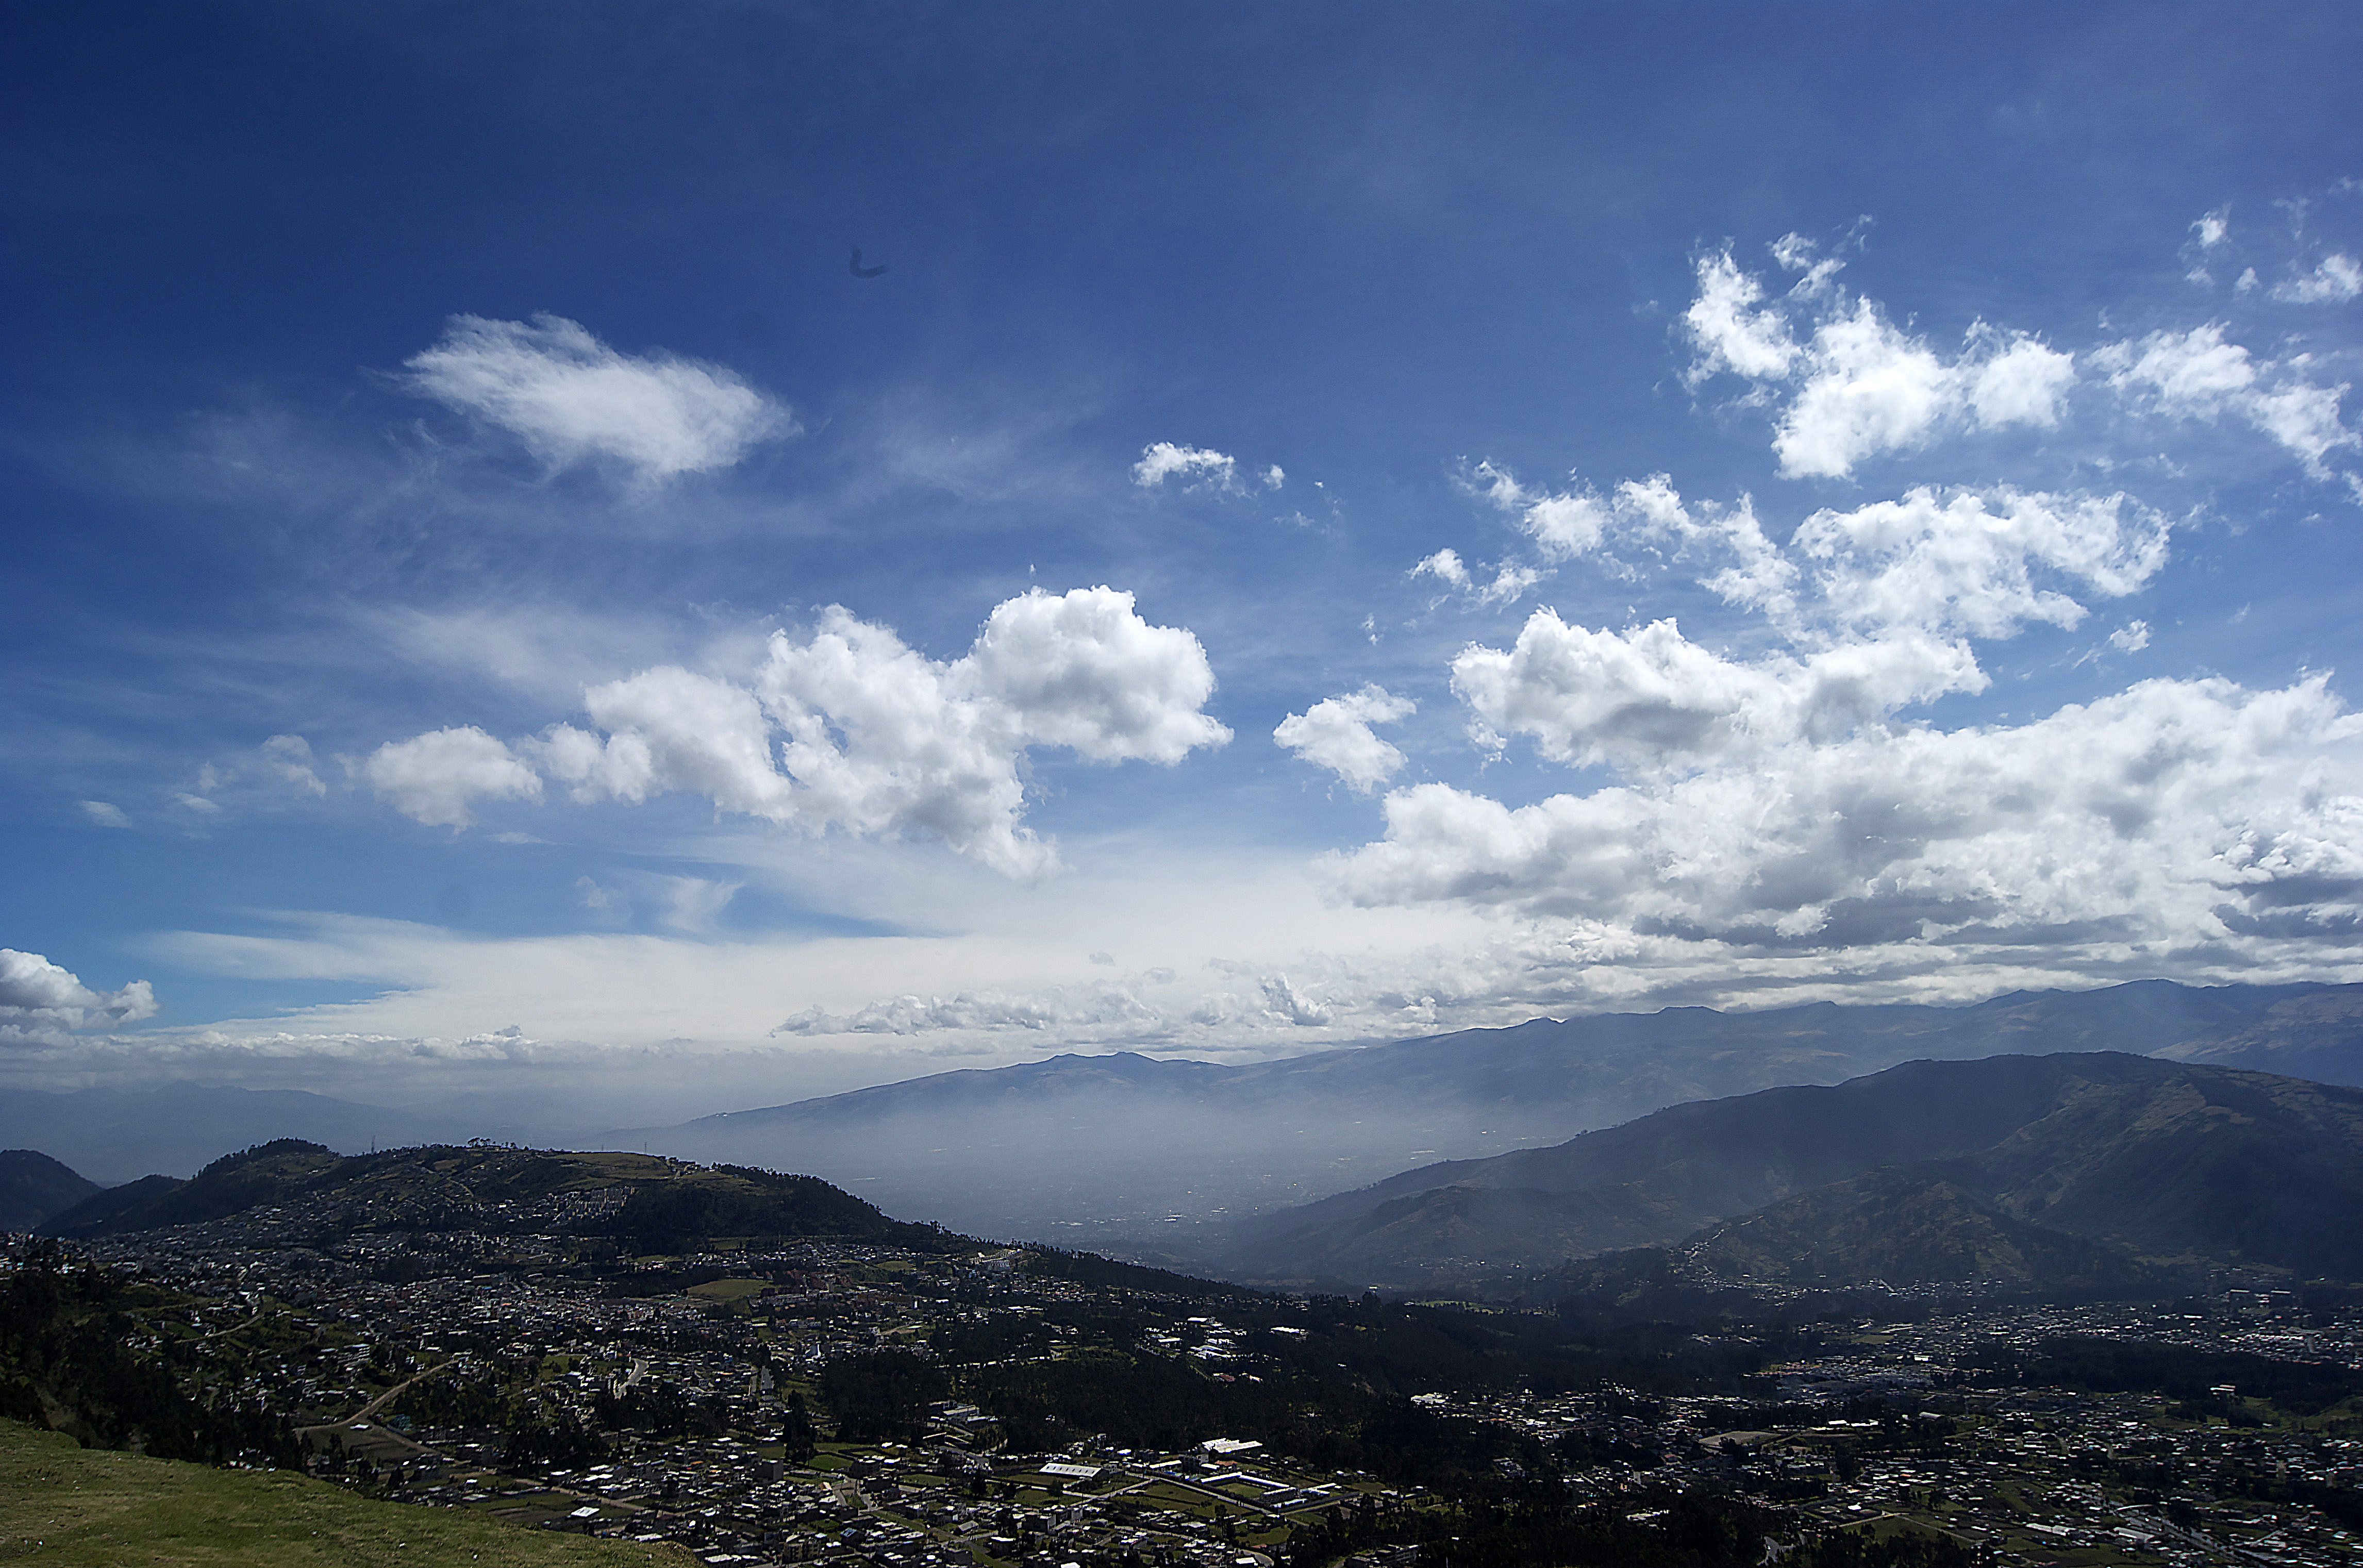 A work by Does - Quito equador skyline 1